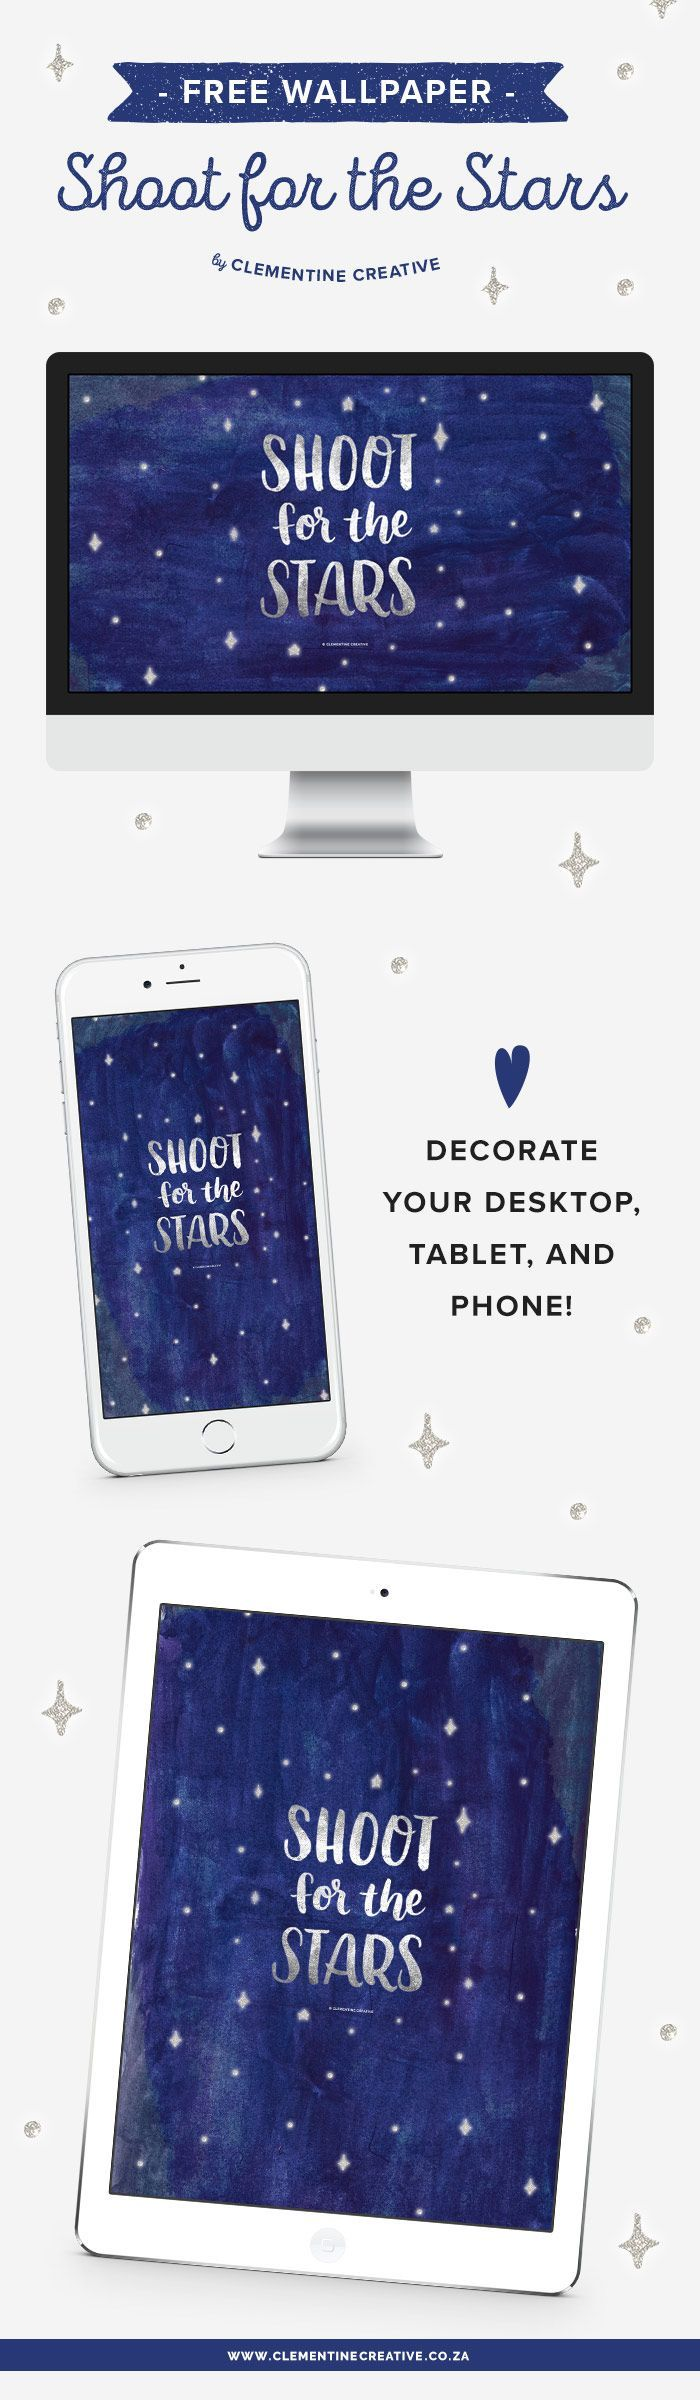 Shoot for the Stars with this beautiful free wallpaper background from Clementine Creative. Download here!